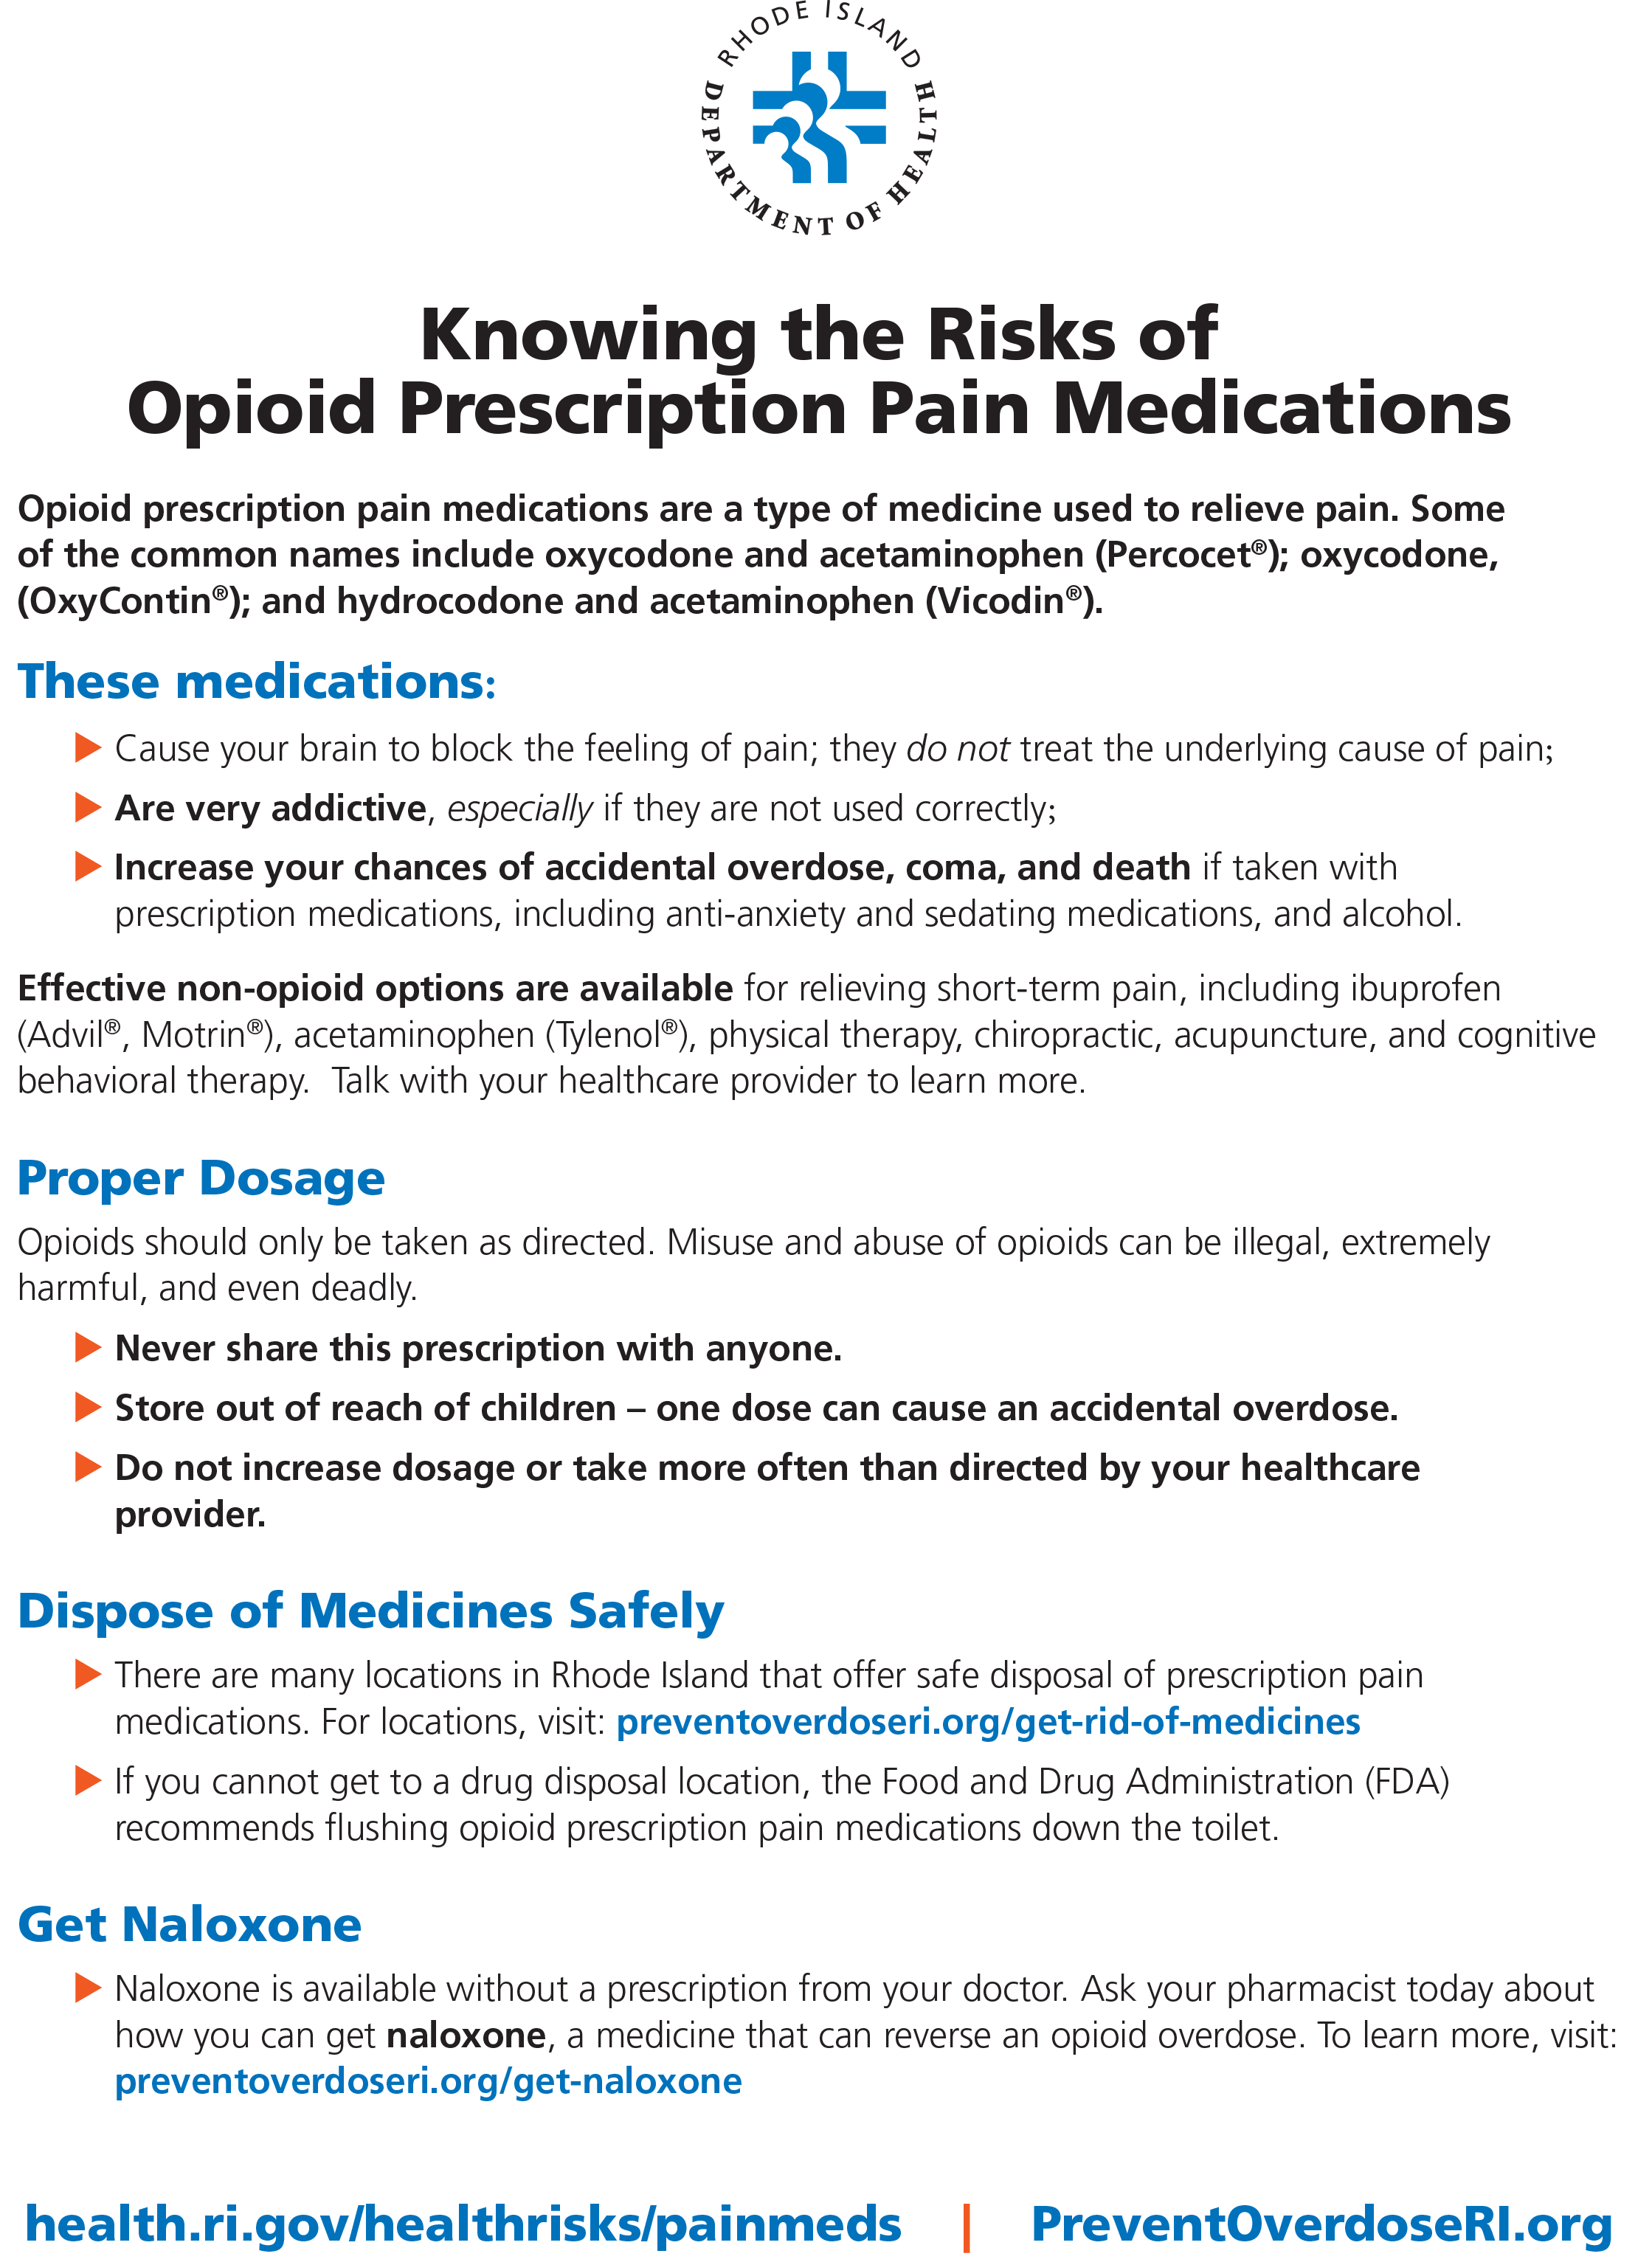 Knowing the Risks of Opioid Prescription Pain Medications